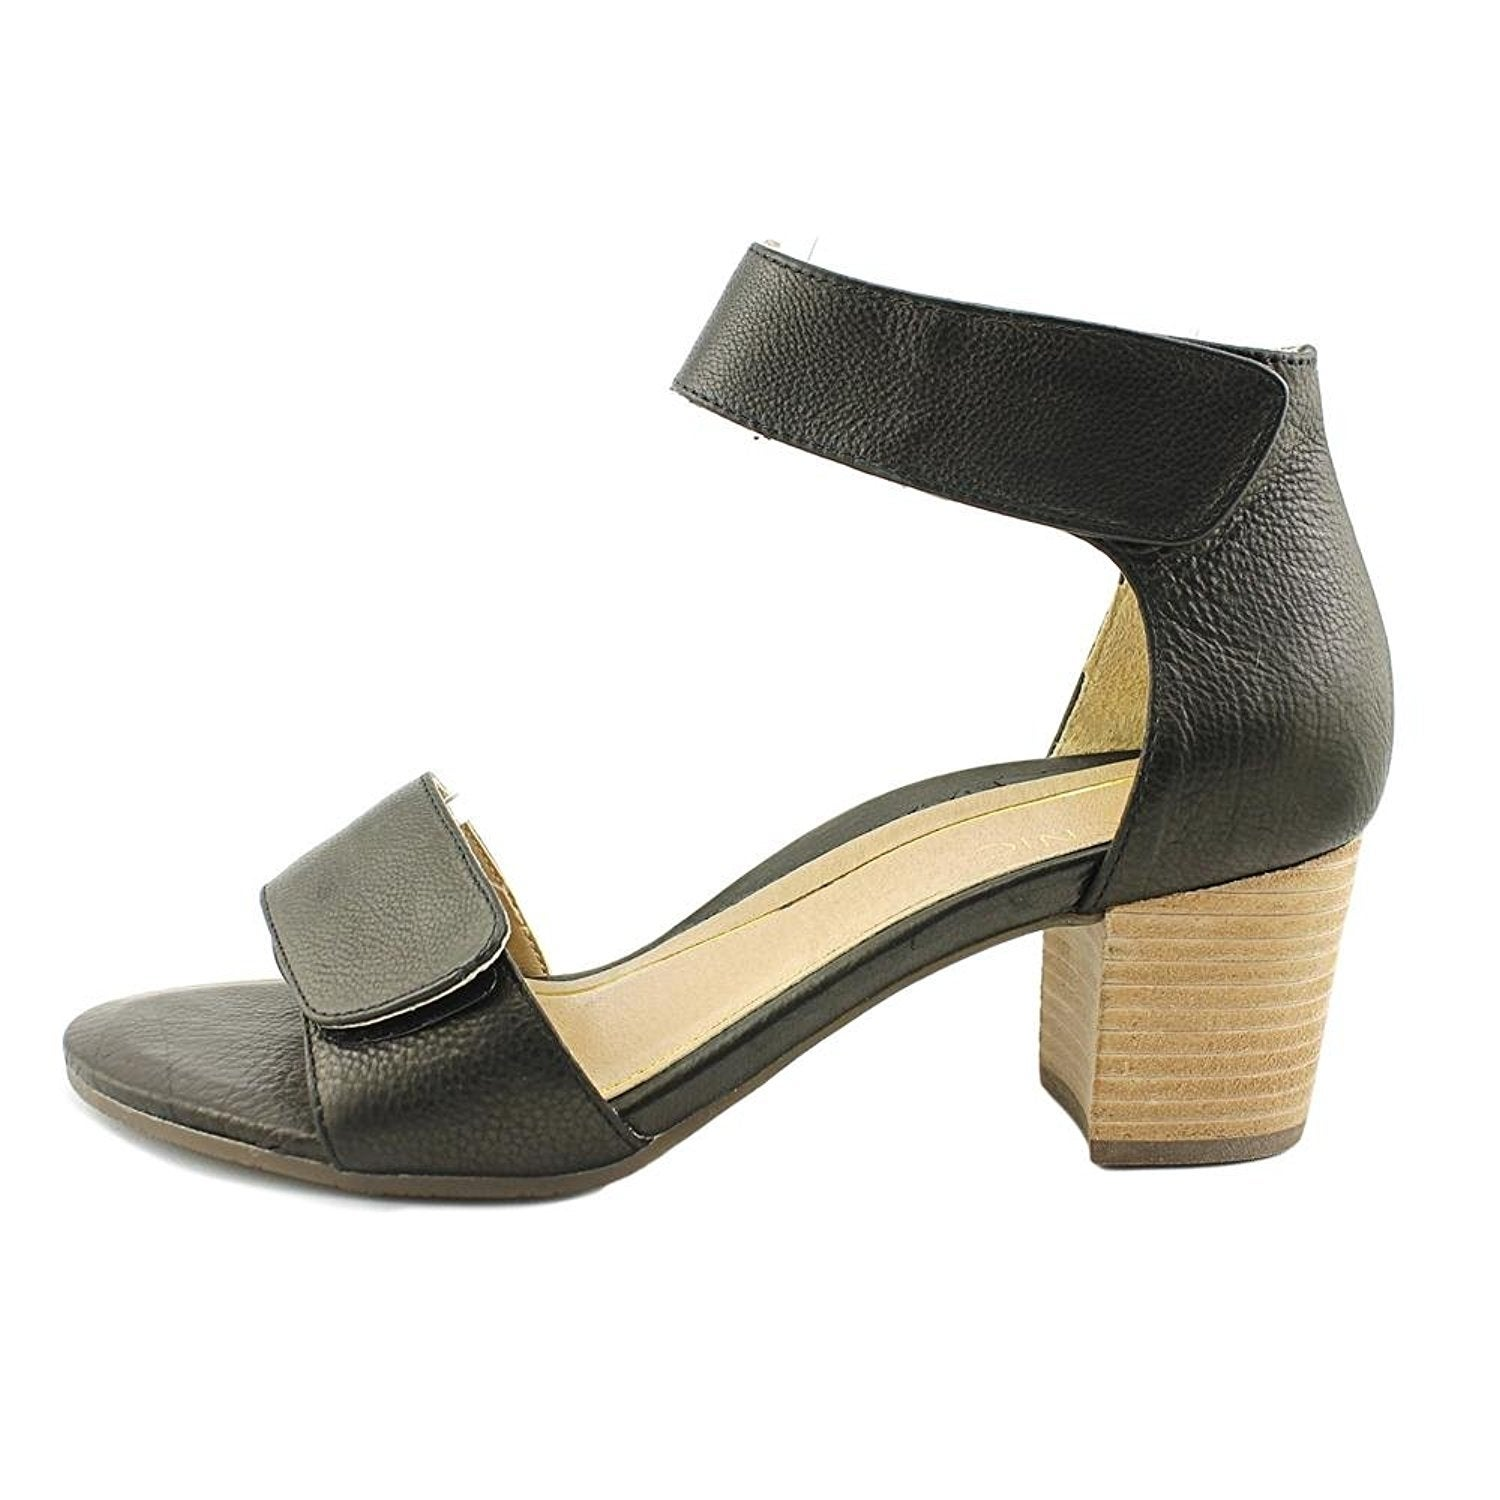 6ae584ce6a63 Shop Vionic Women s Solana Arch Support Dress Sandal - Free Shipping Today  - Overstock - 19863963